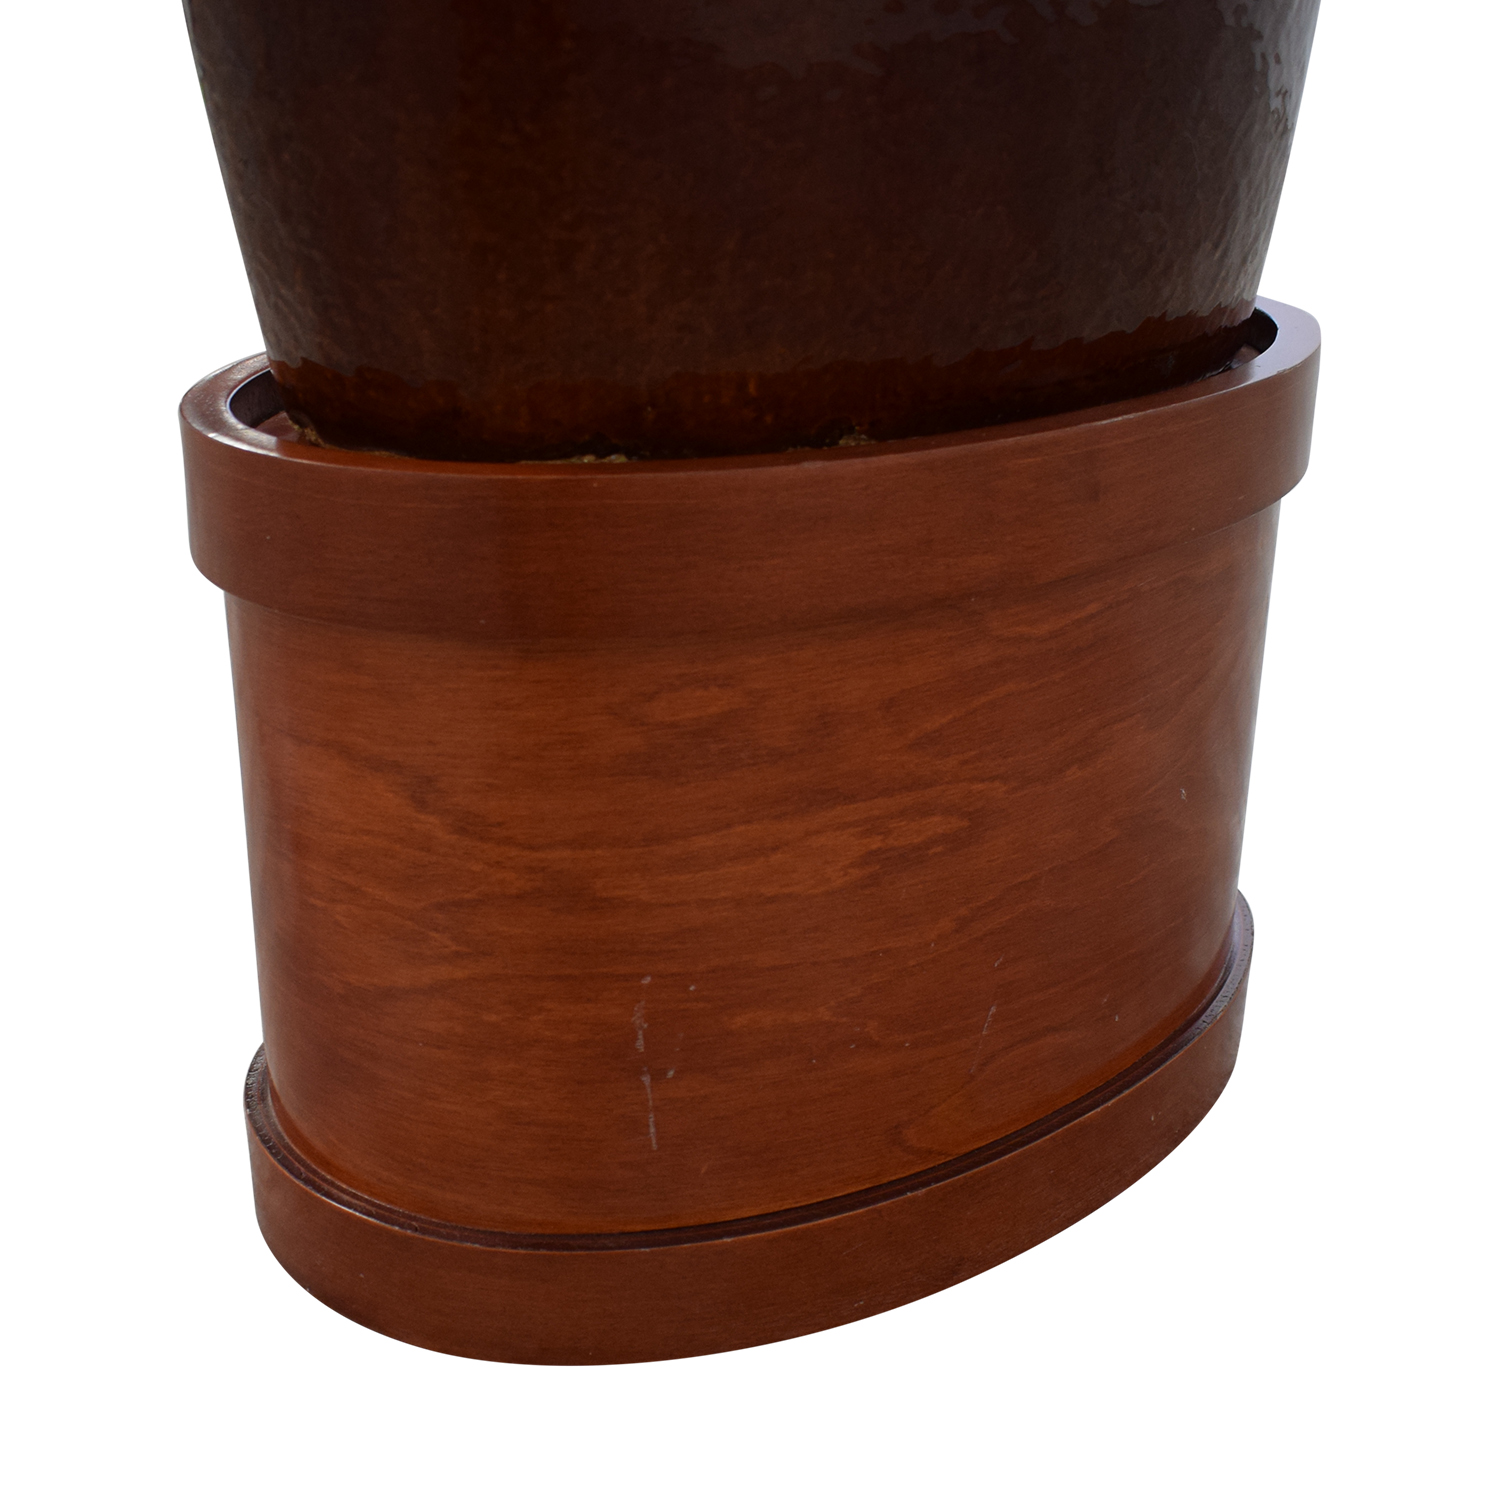 Large Decorative Vase with Wooden Base on sale